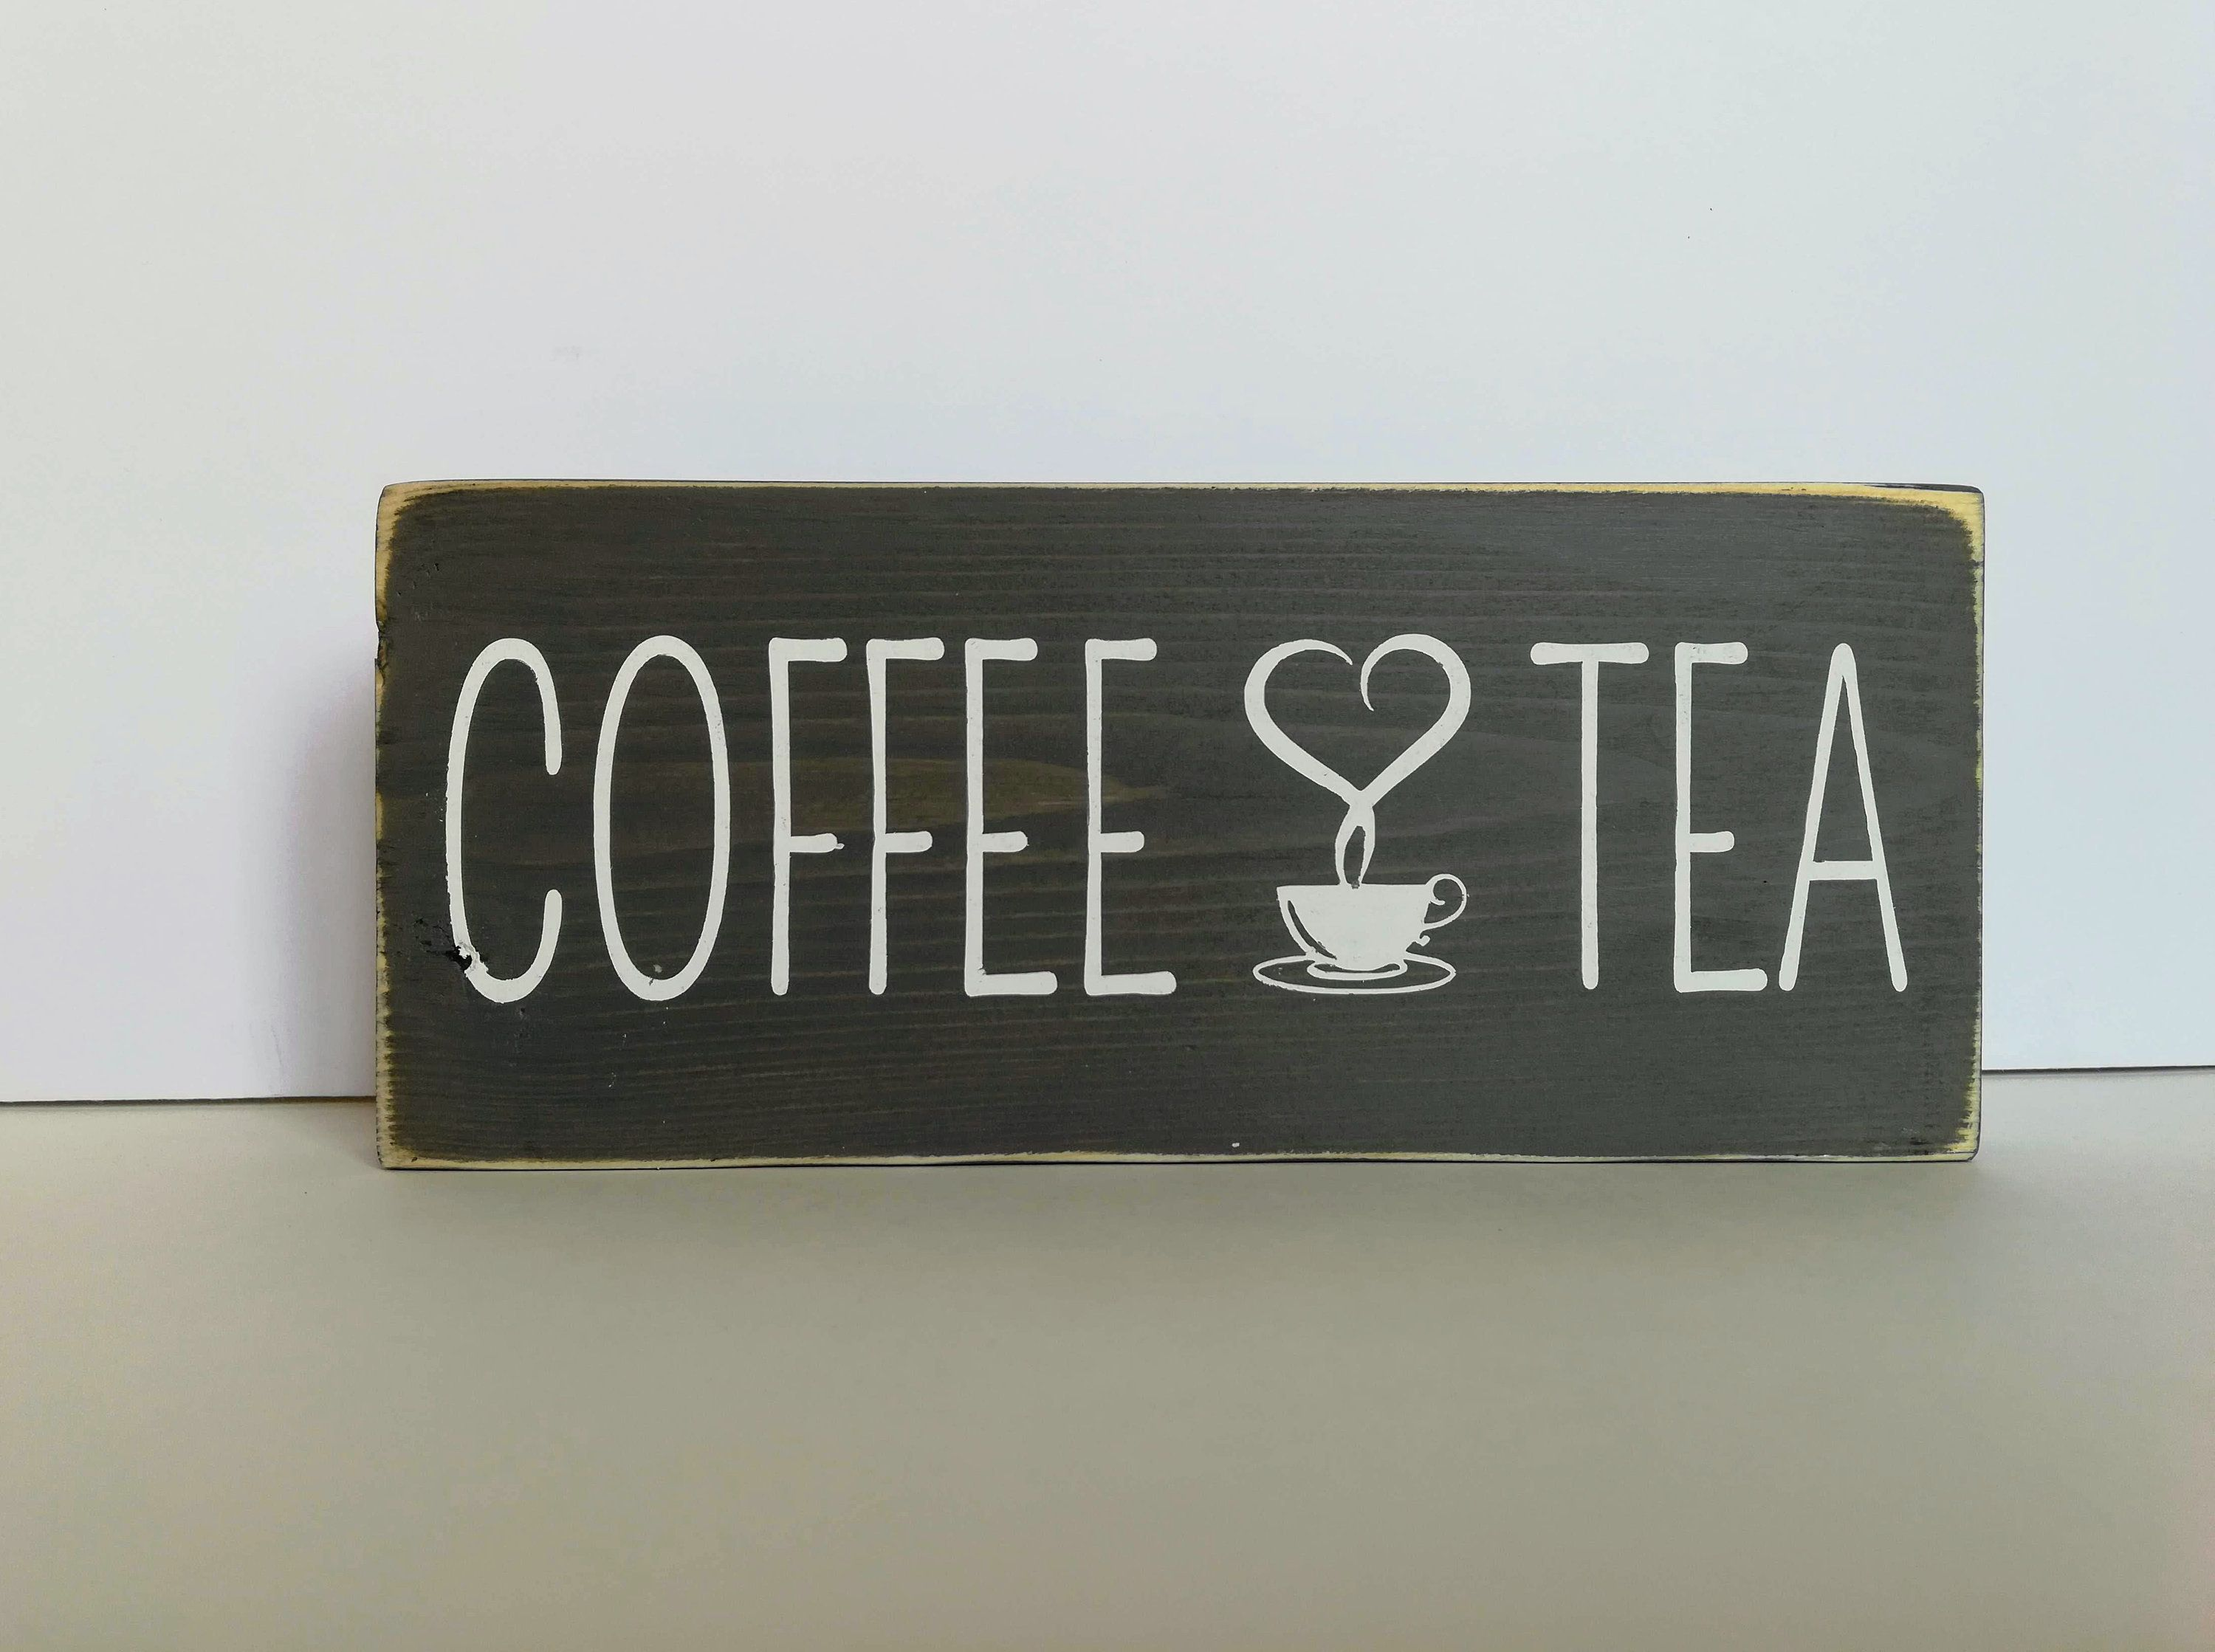 Coffee Tea Bar Sign For Kitchen Decor Rustic Kitchen Decor Coffee Wood Sign For Kitchen Decor Small Wood Sign Coffee And Tea Sign Coffee Wood Signs